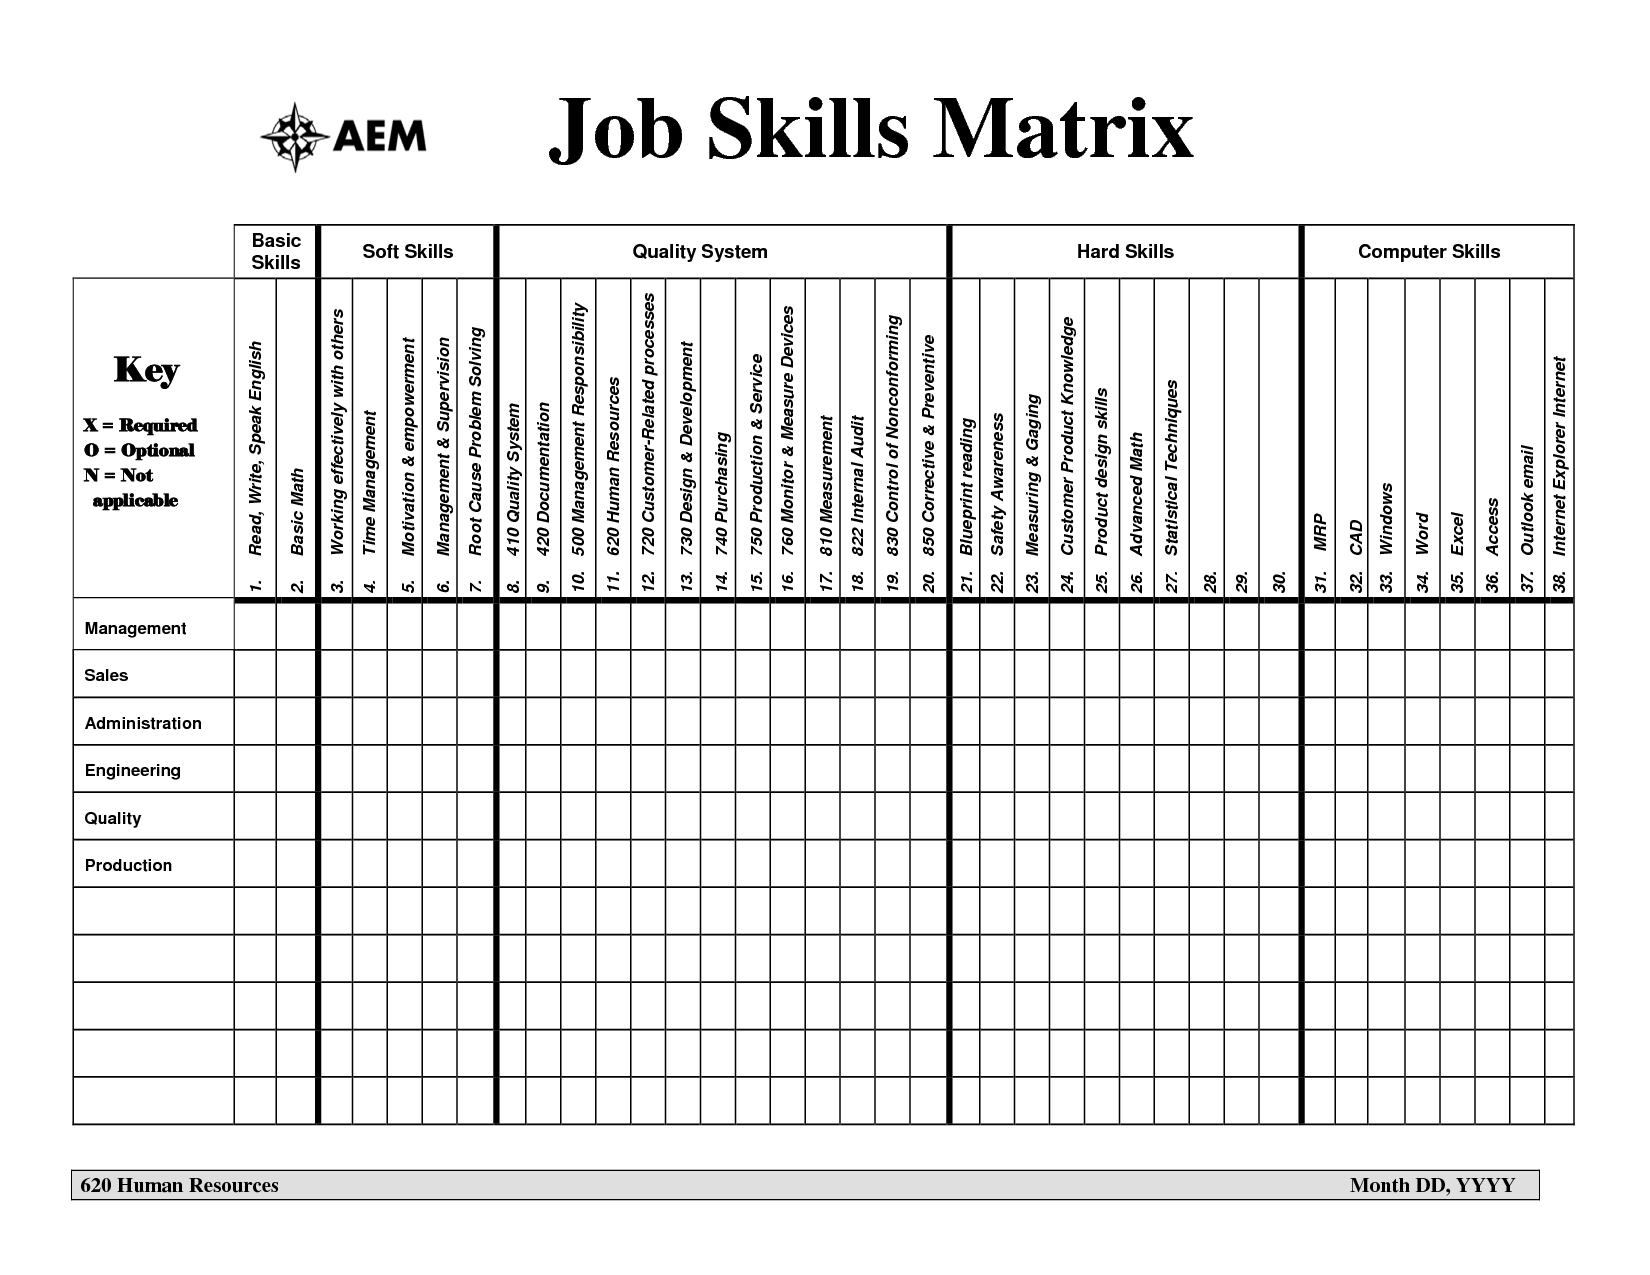 image result for job skills matrix for design professional image result for job skills matrix for design